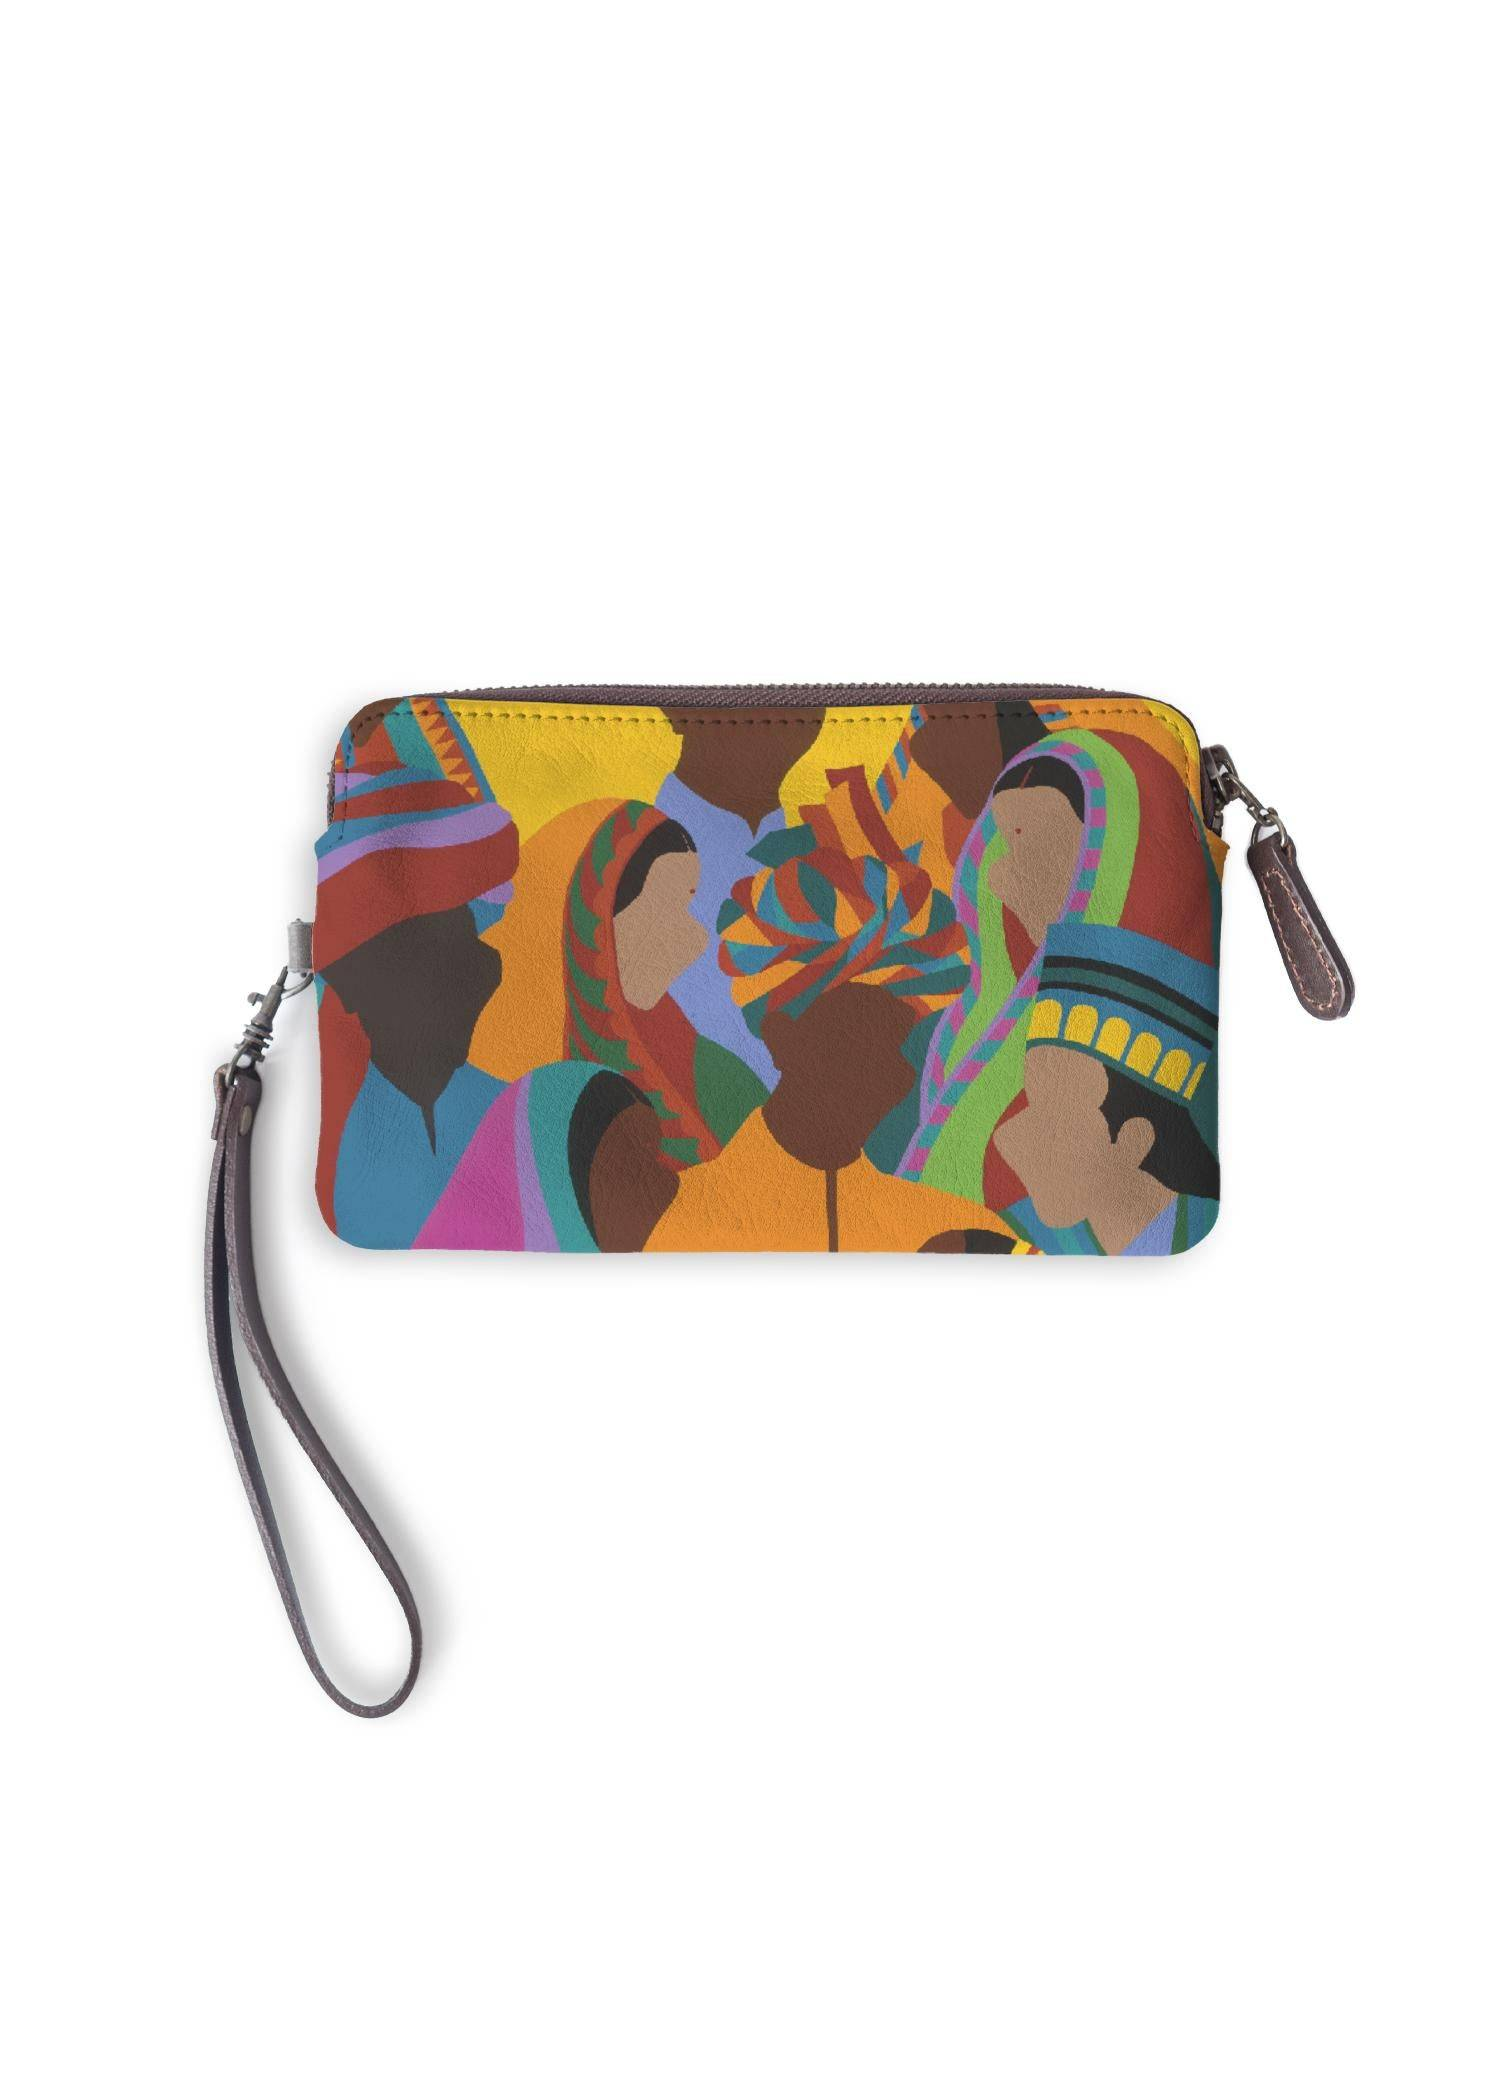 Synthia Saint James Leather Statement Clutch - Diwali by Synthia Saint James Original Artist  - Size: One Size